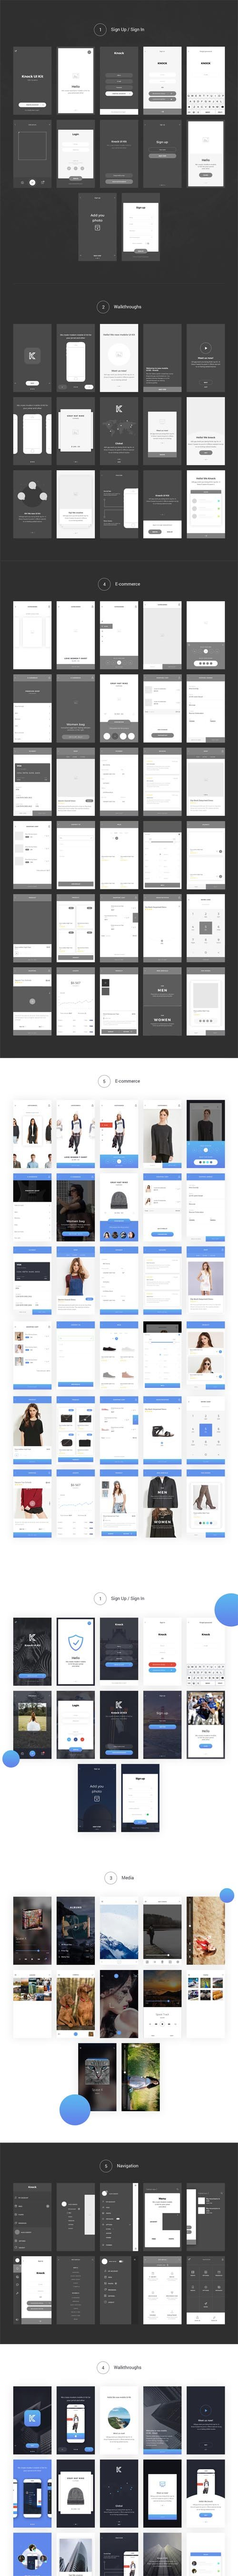 Knock Mobile UI Kit with Wireframe